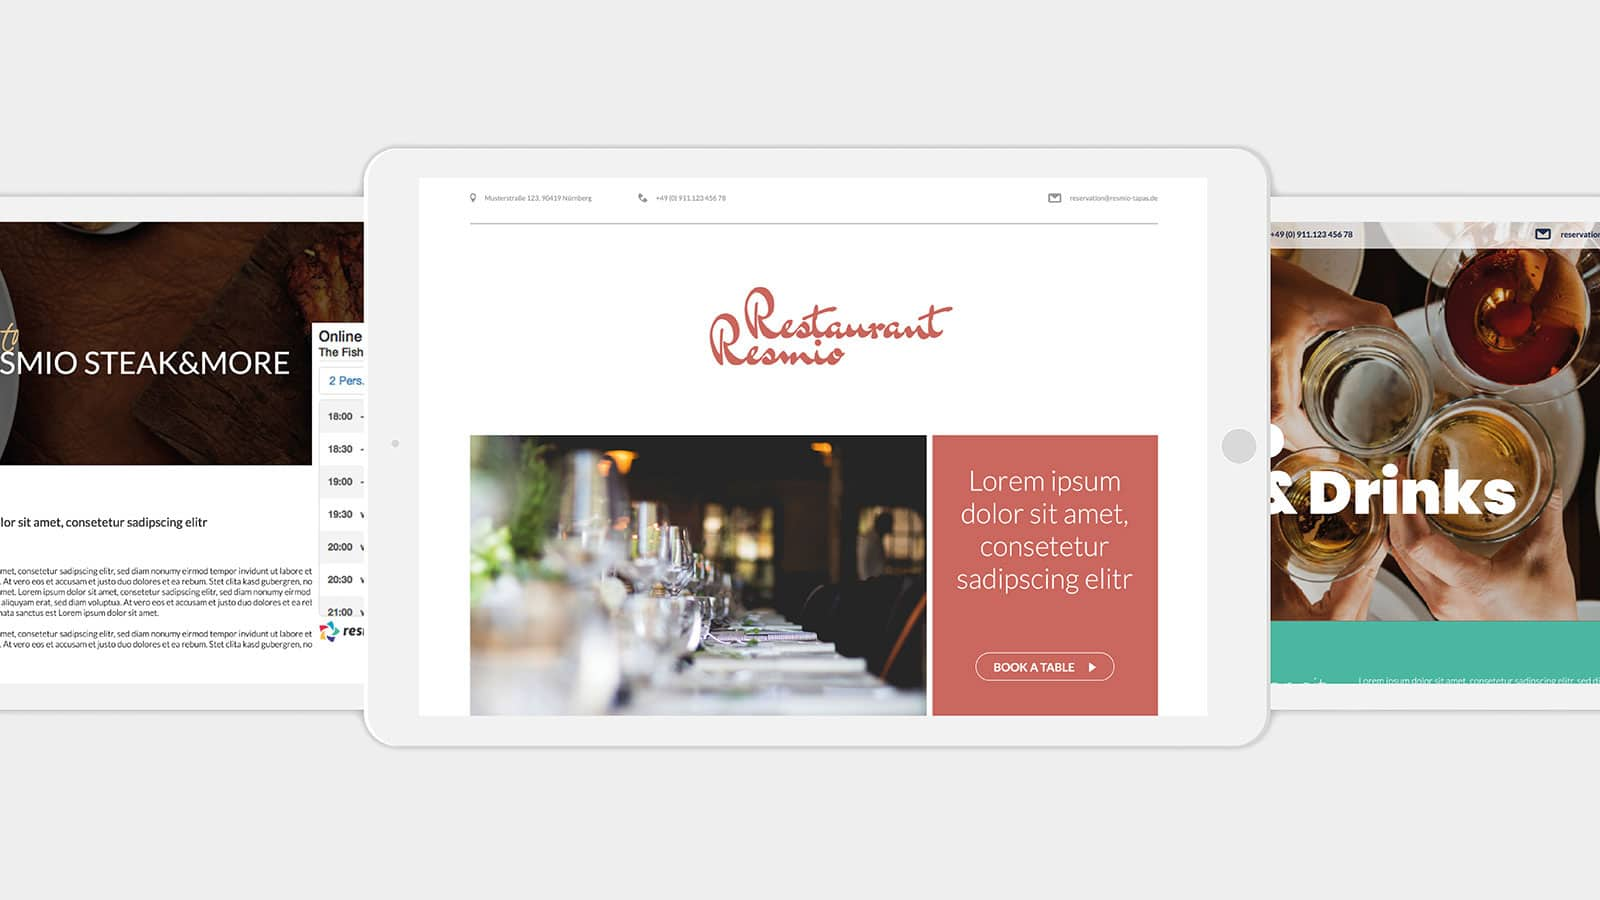 resmio free website dining